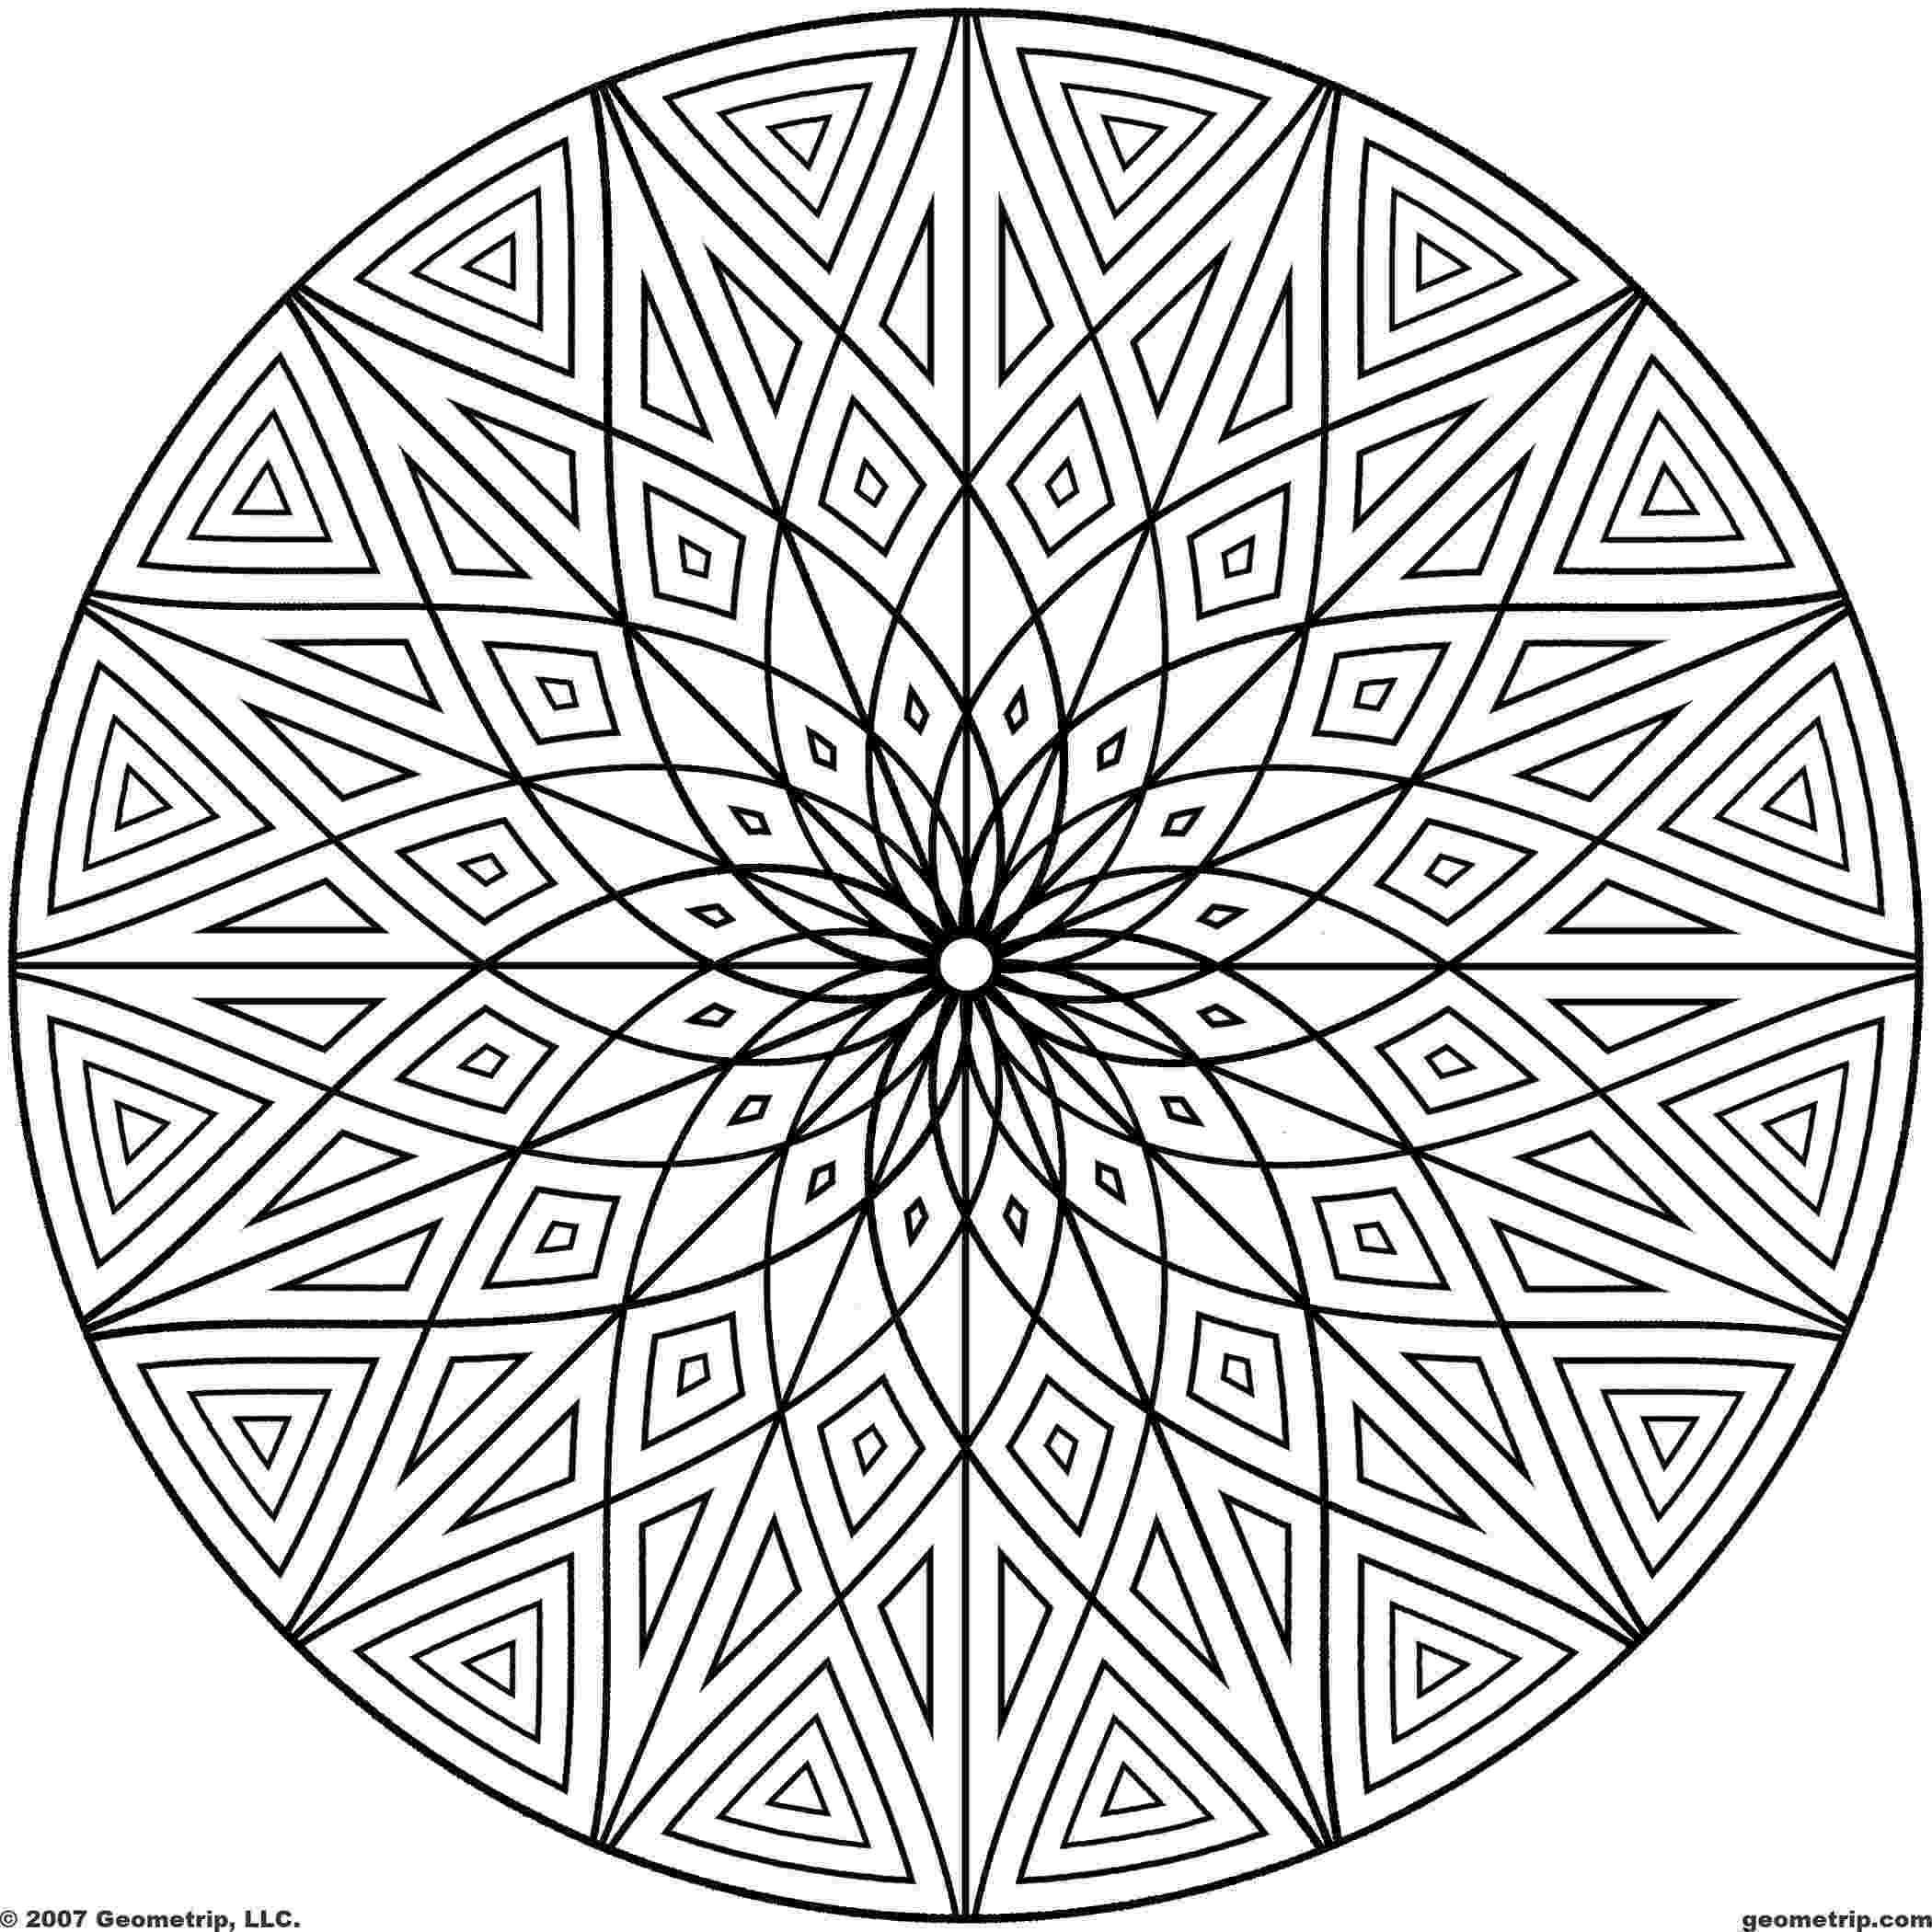 colouring patterns free printable geometric coloring pages for kids patterns colouring 1 1